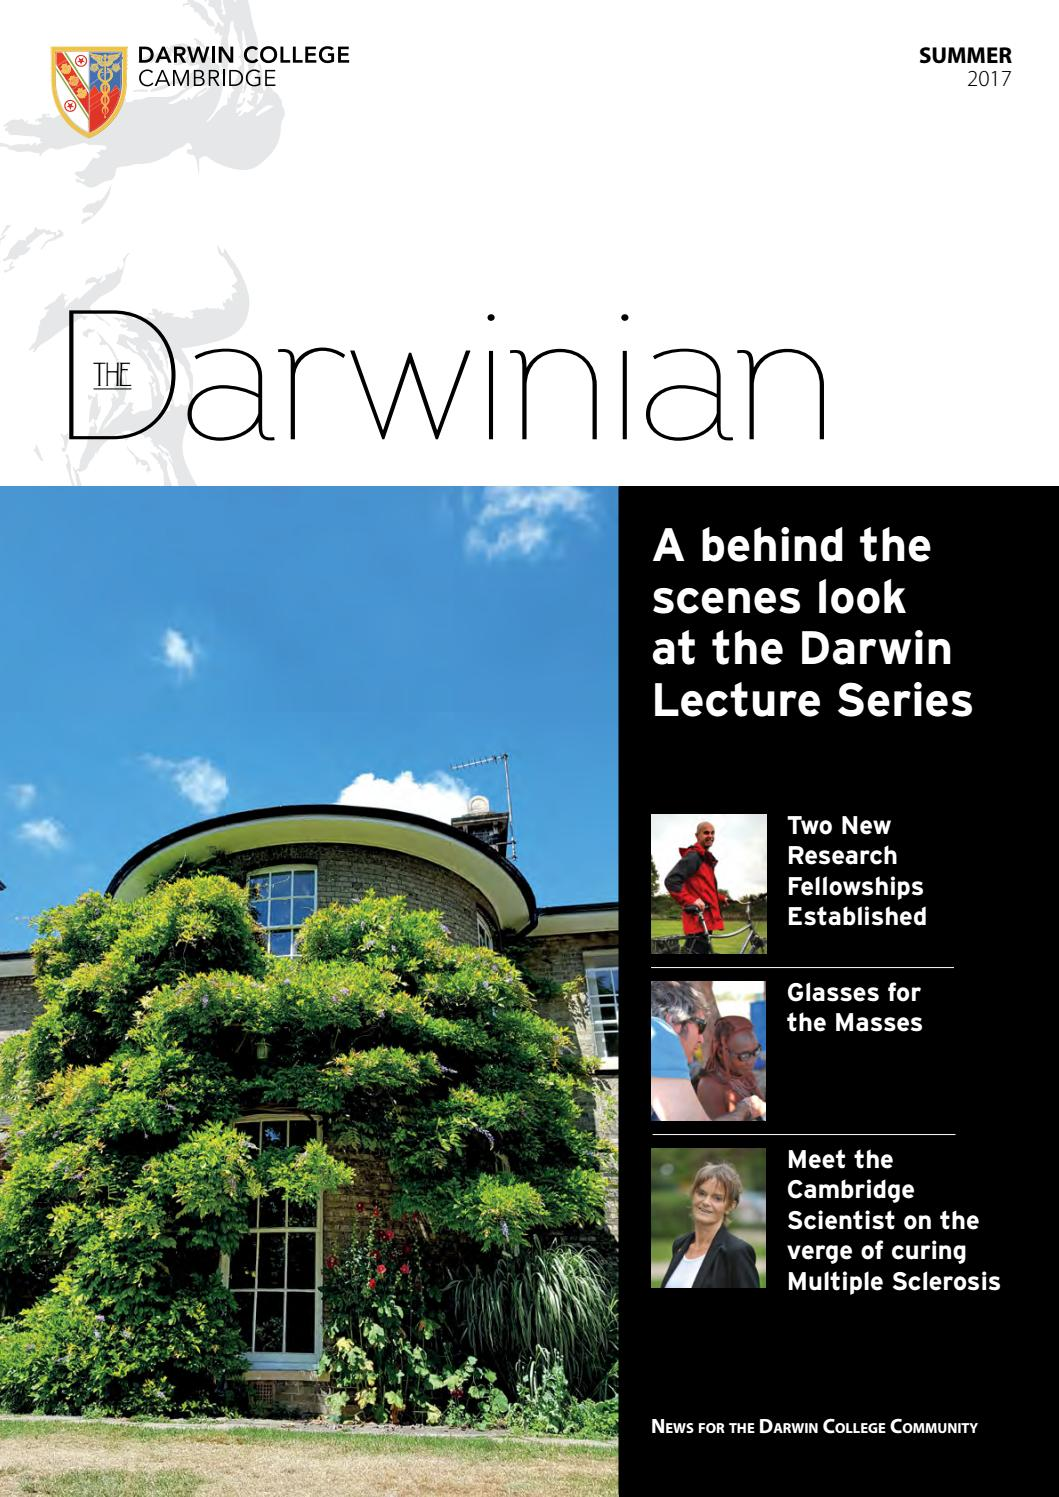 Who and for what was the Darwin Prize issued